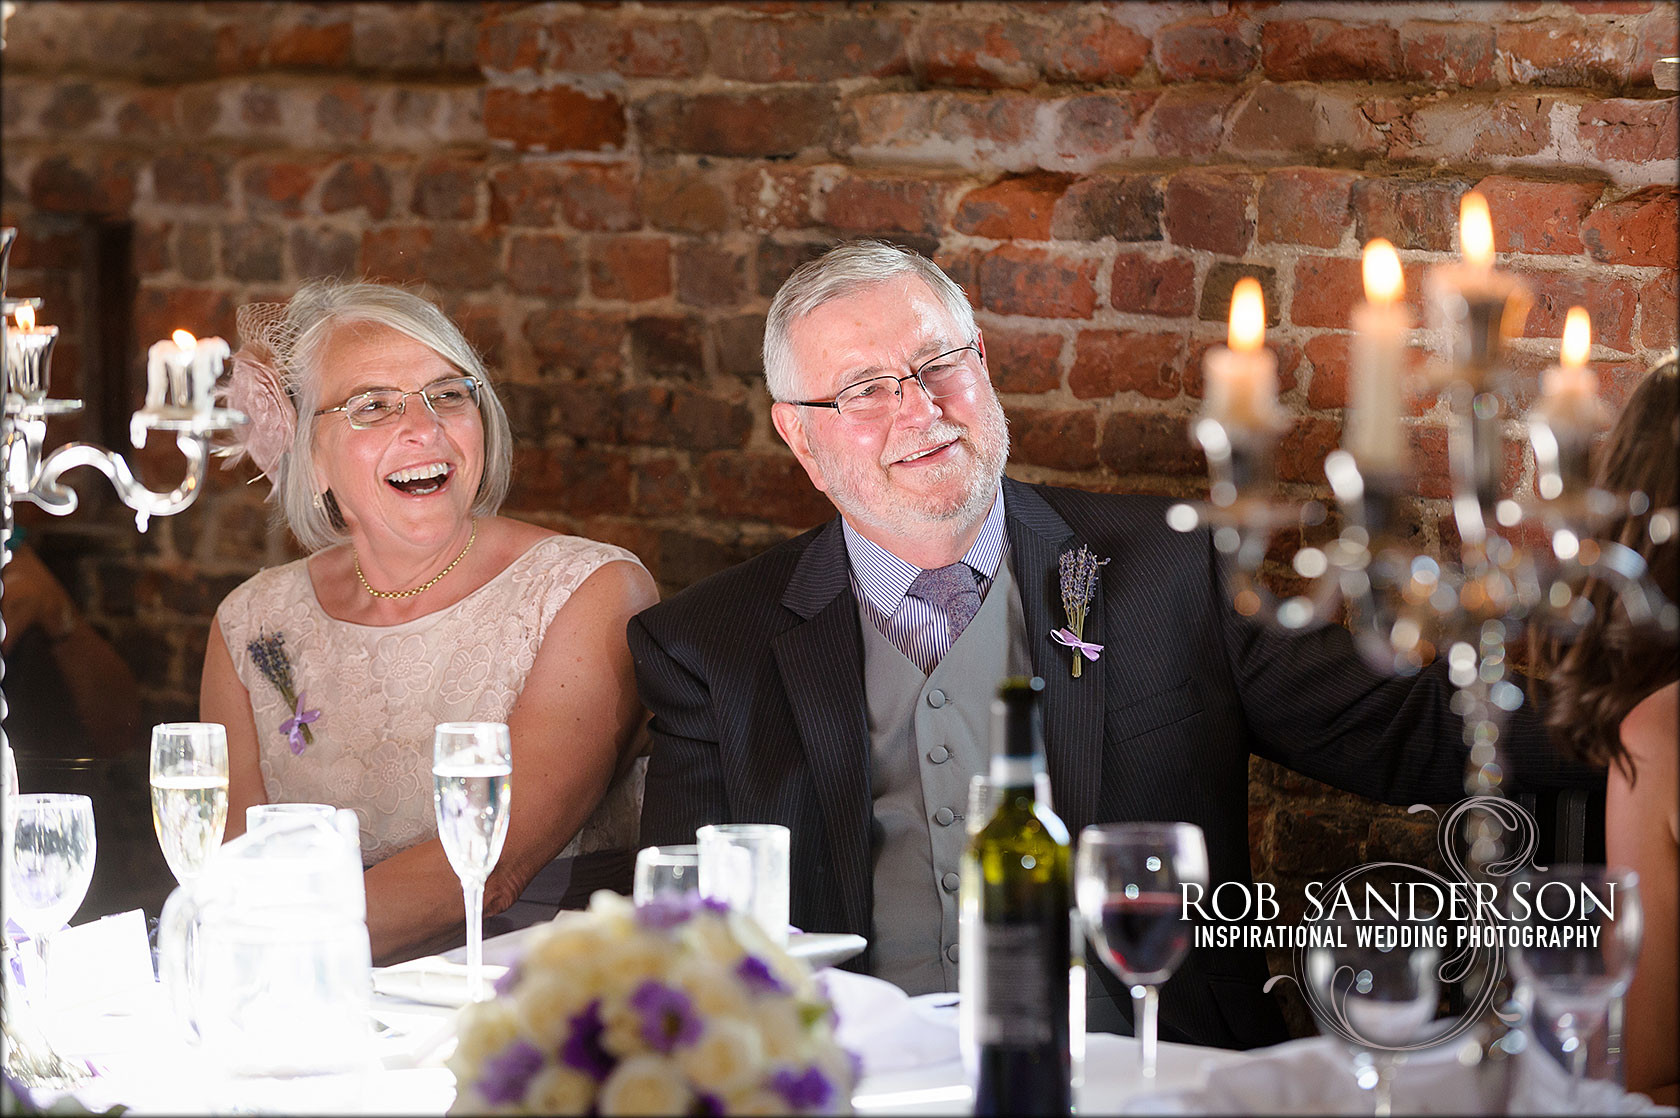 Parents of the groom laughing at the wedding speeches